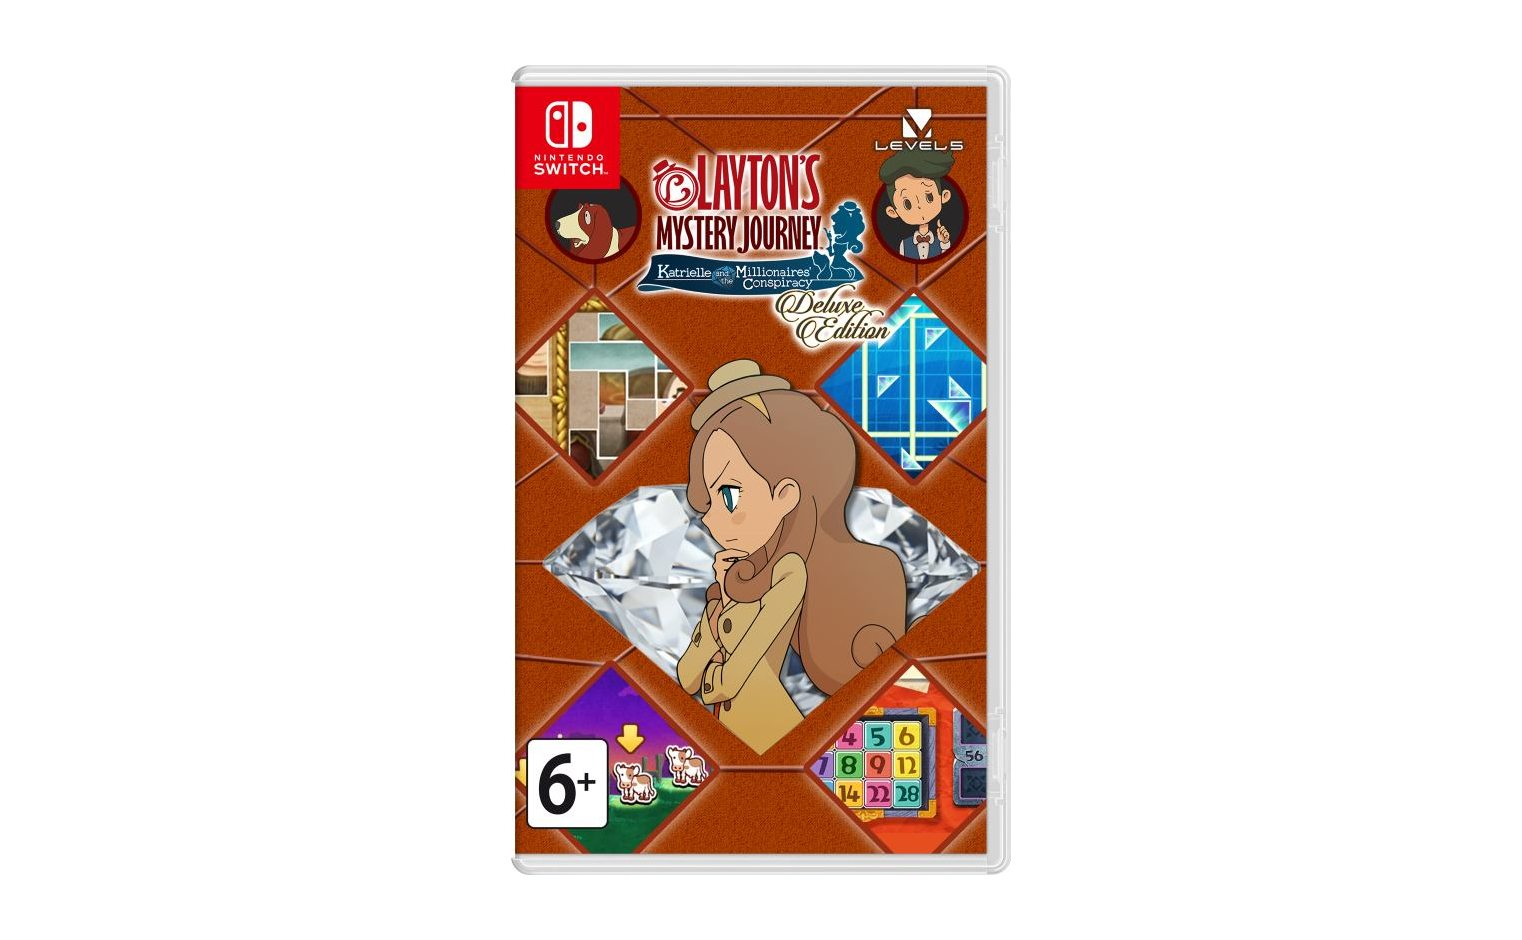 Nintendo Layton's Mystery Journey: Katrielle and the Millionaires' Conspiracy - Deluxe Edition Nintendo